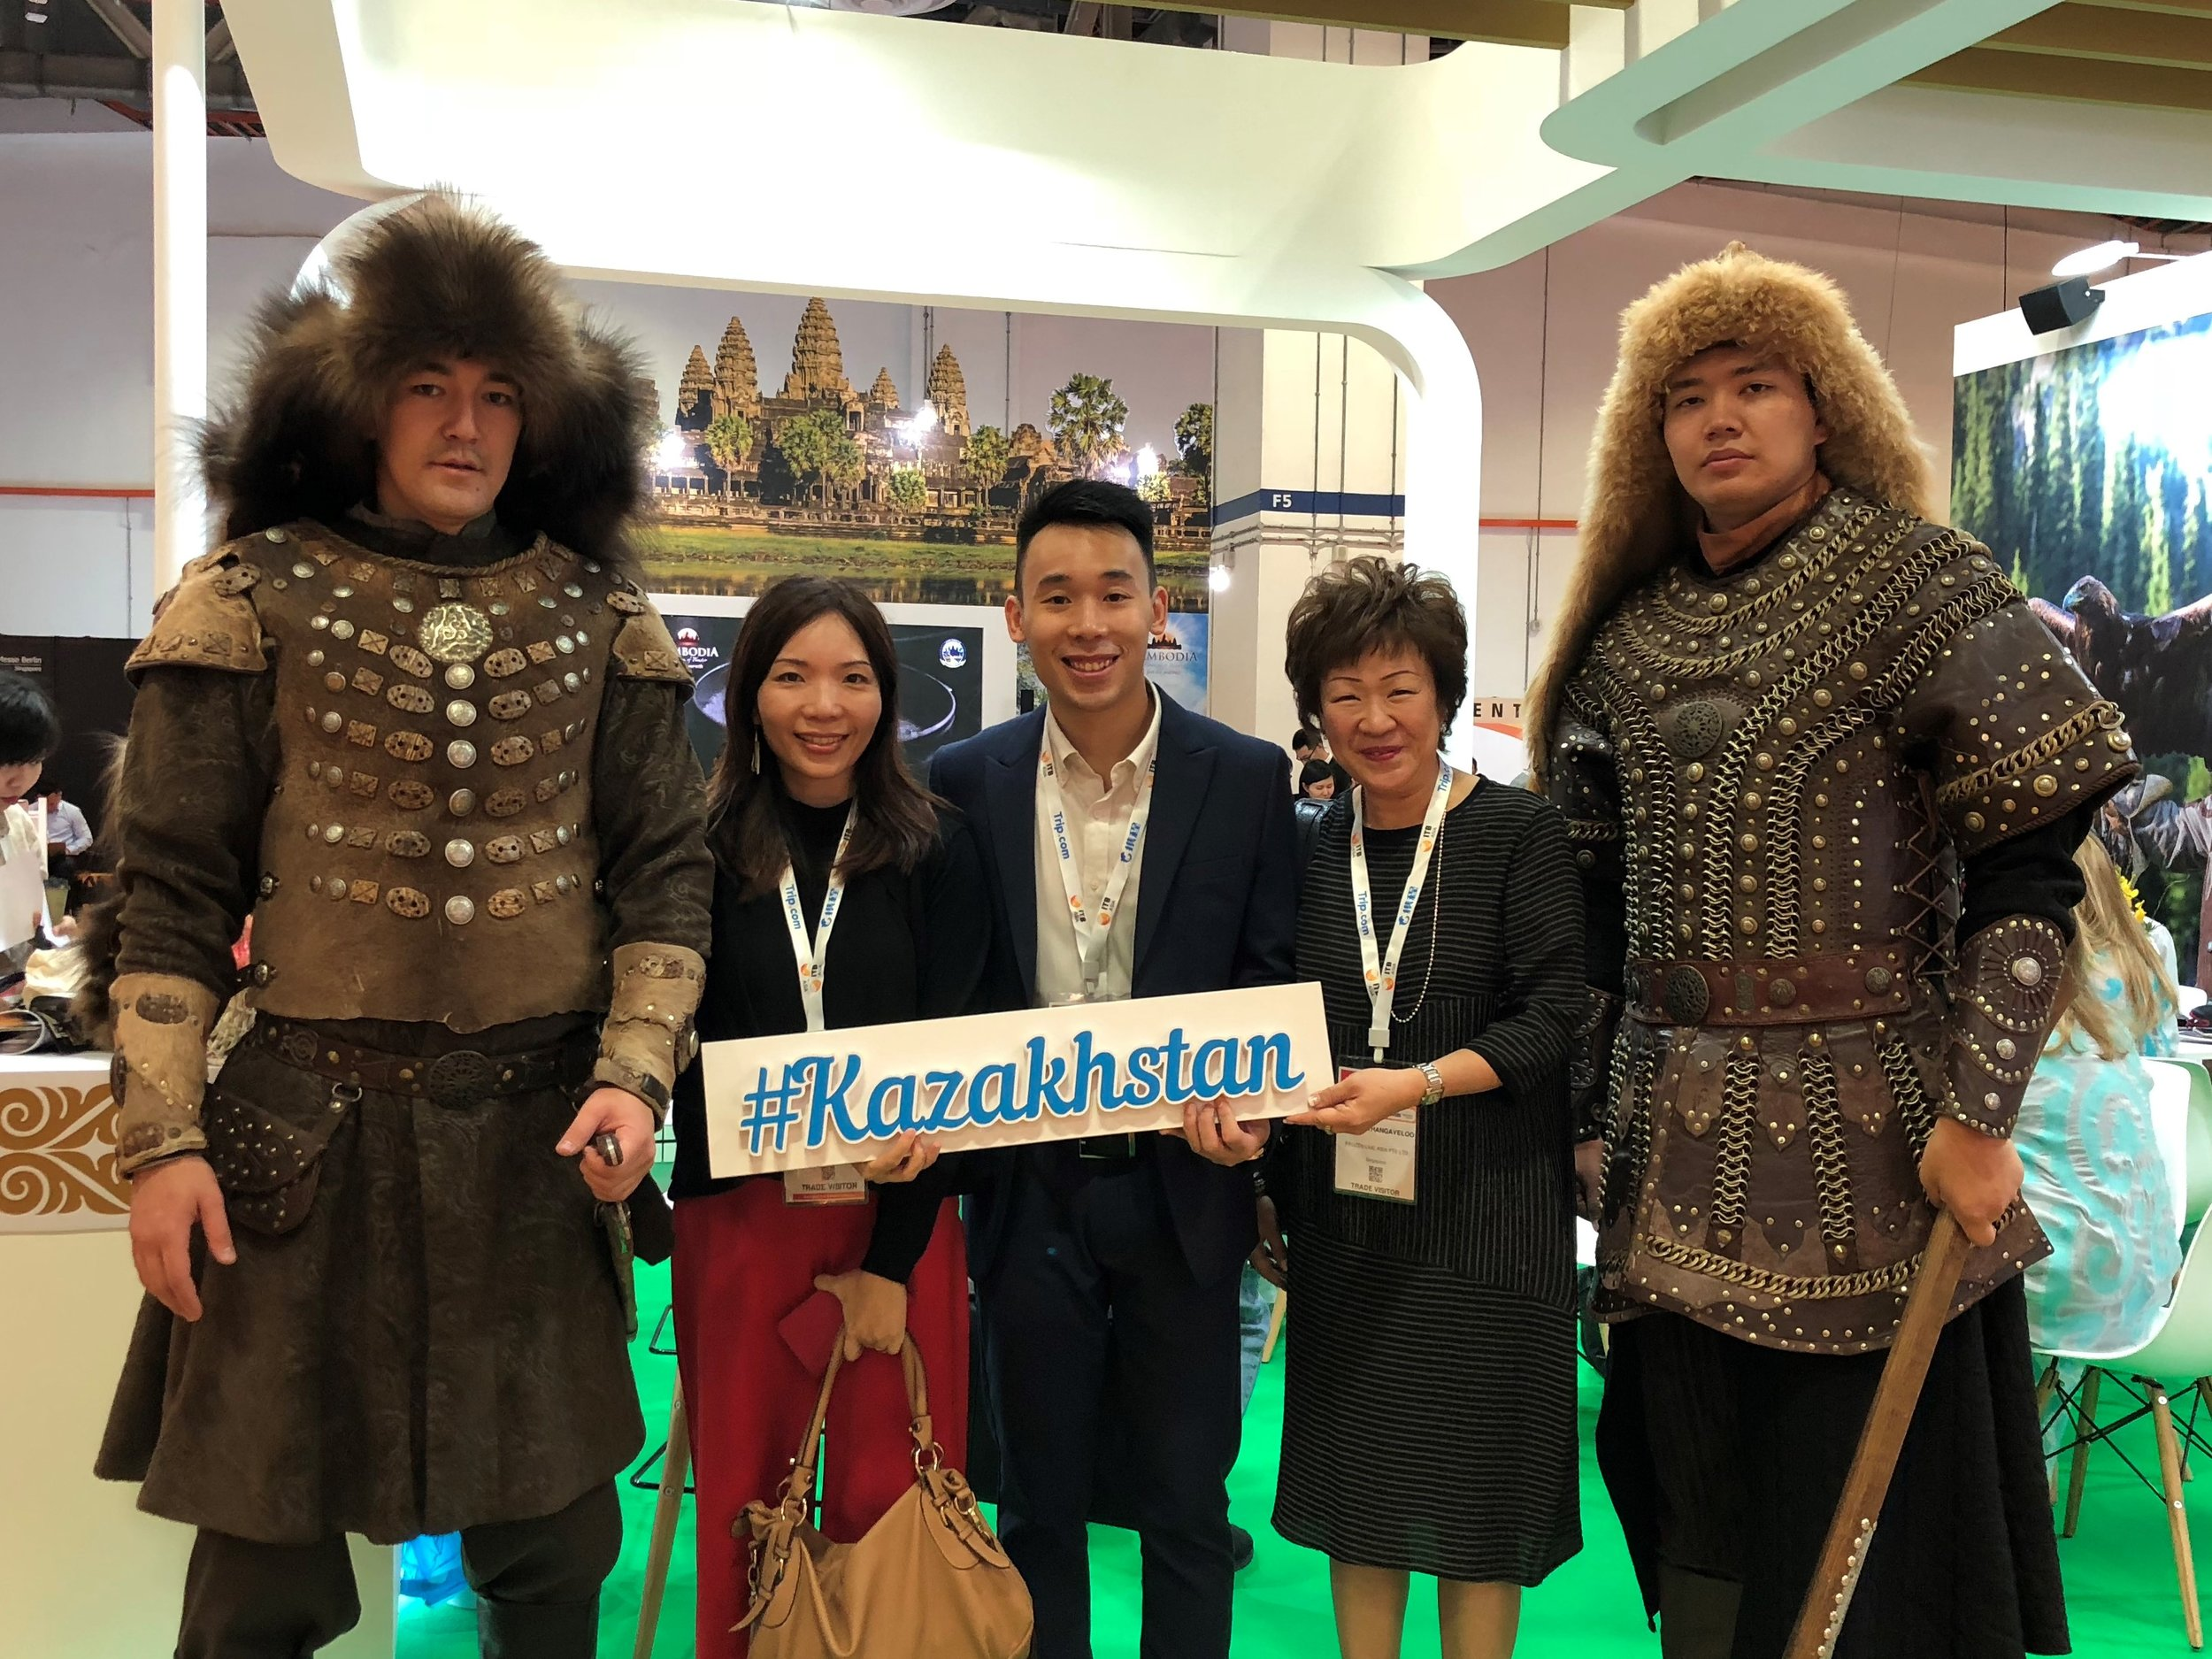 From left to right: Ms Jasmine Teow (FLA), Mr Pow Zhi Hoe (FLA), Ms Aileene Thangaveloo (FLA) at #Kazakhstan.